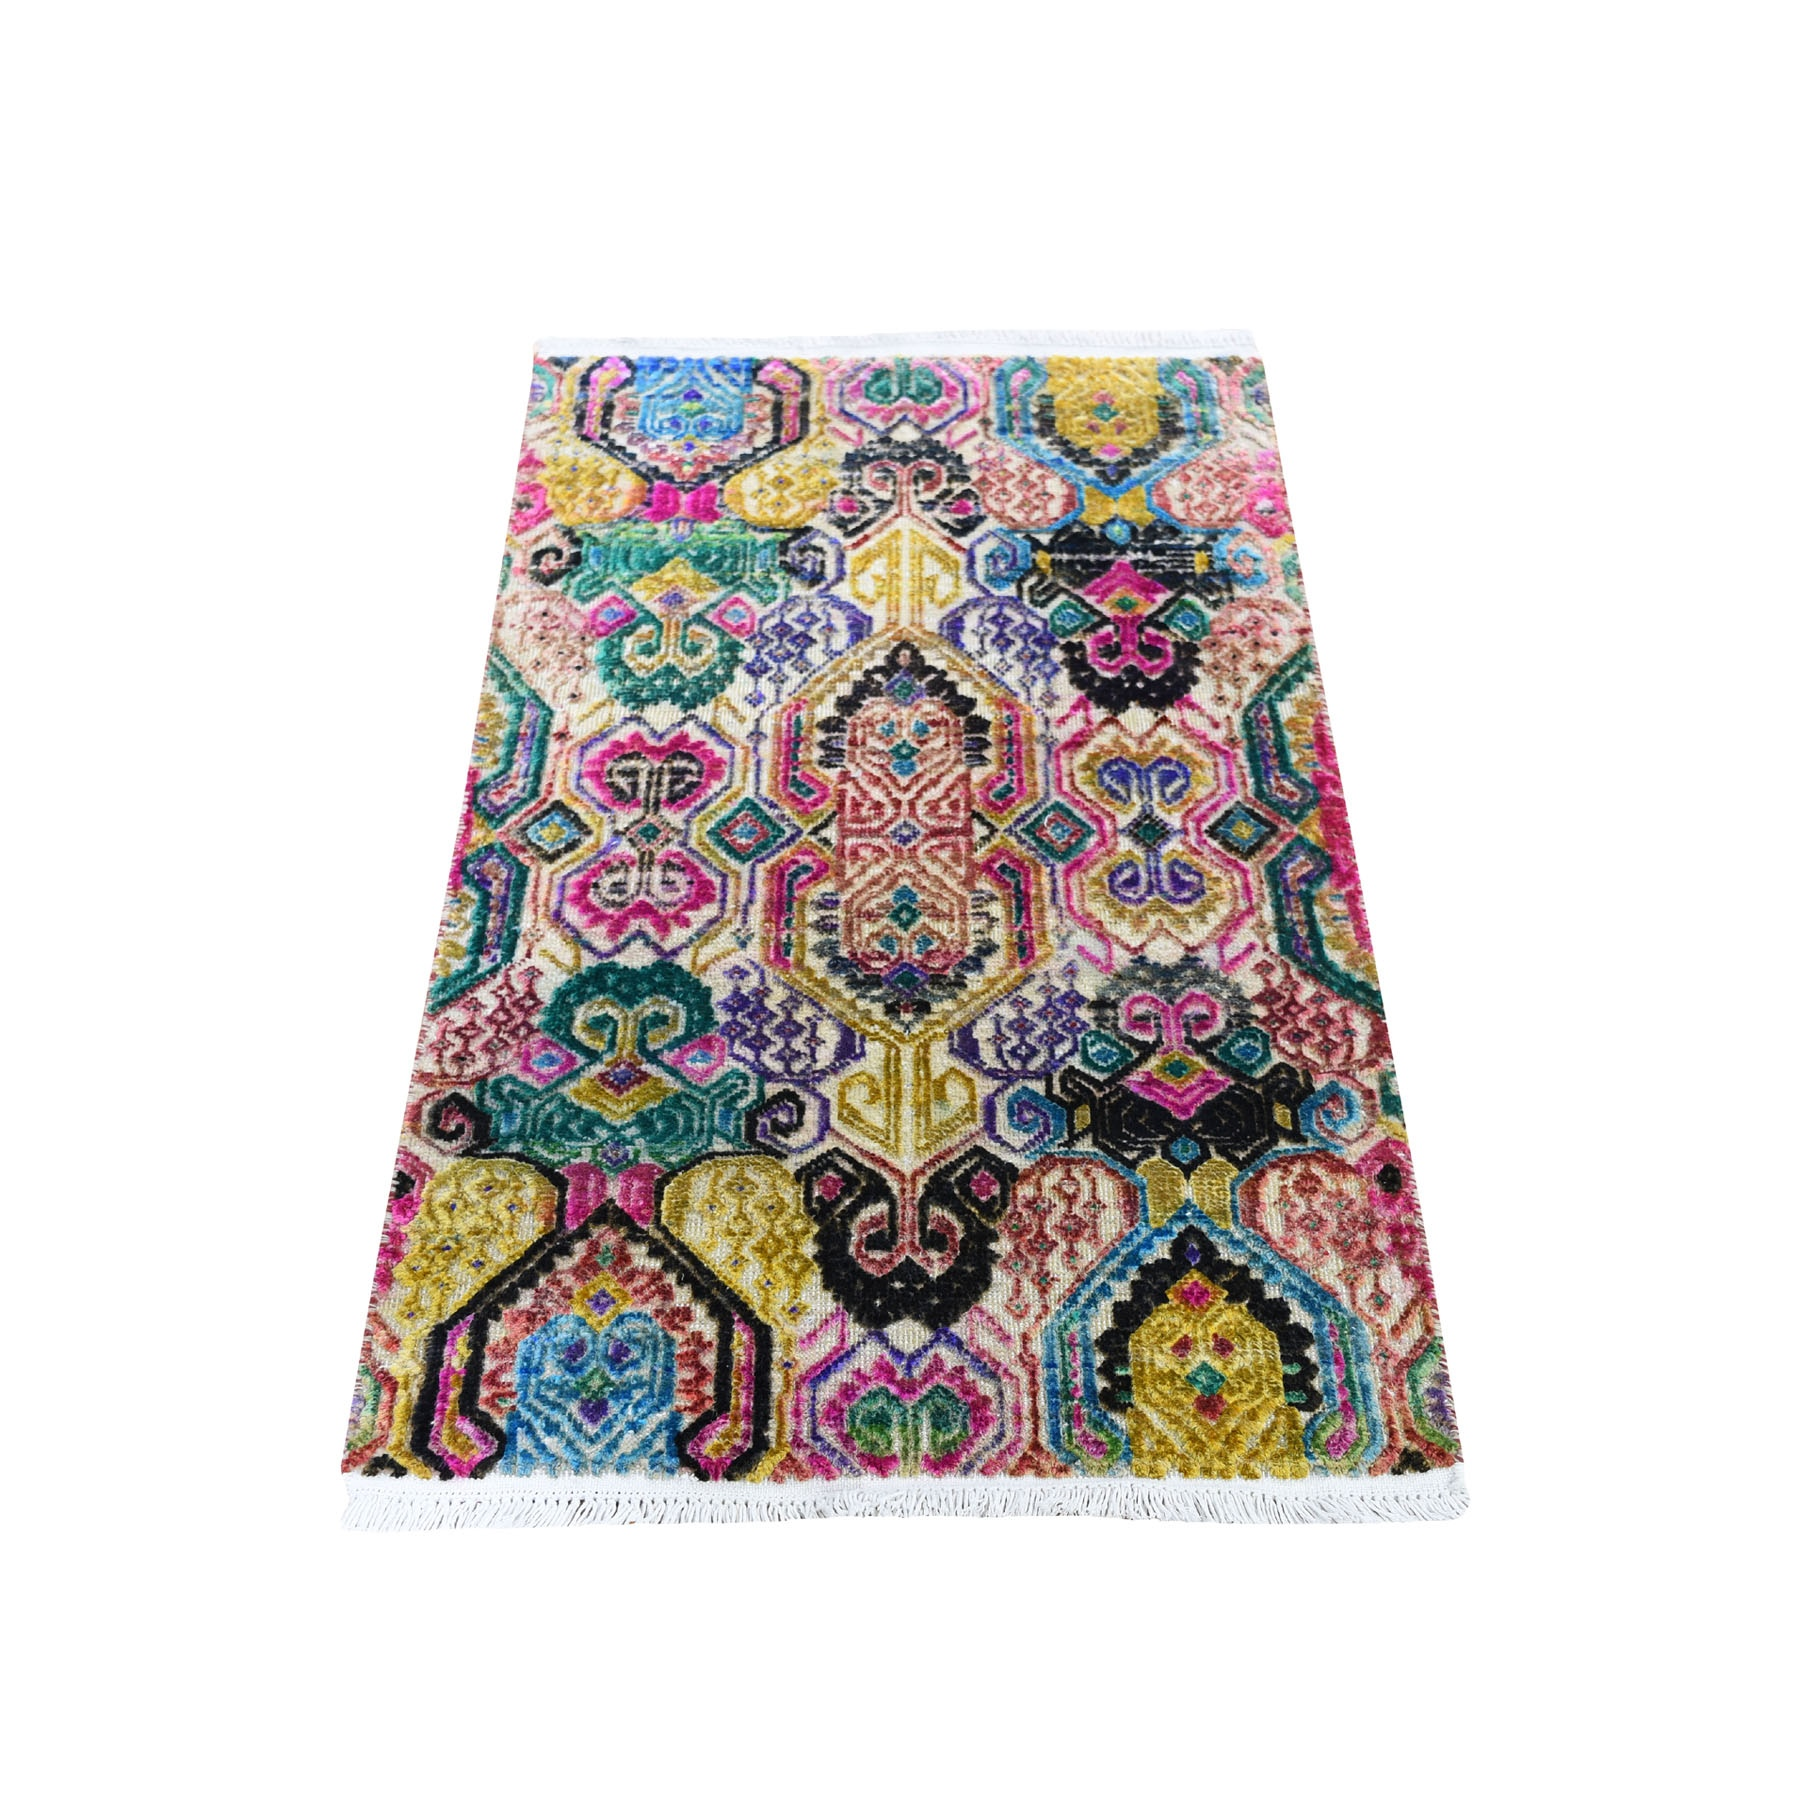 Real Silk Collection Hand Knotted Multicolored Rug No: 0193918